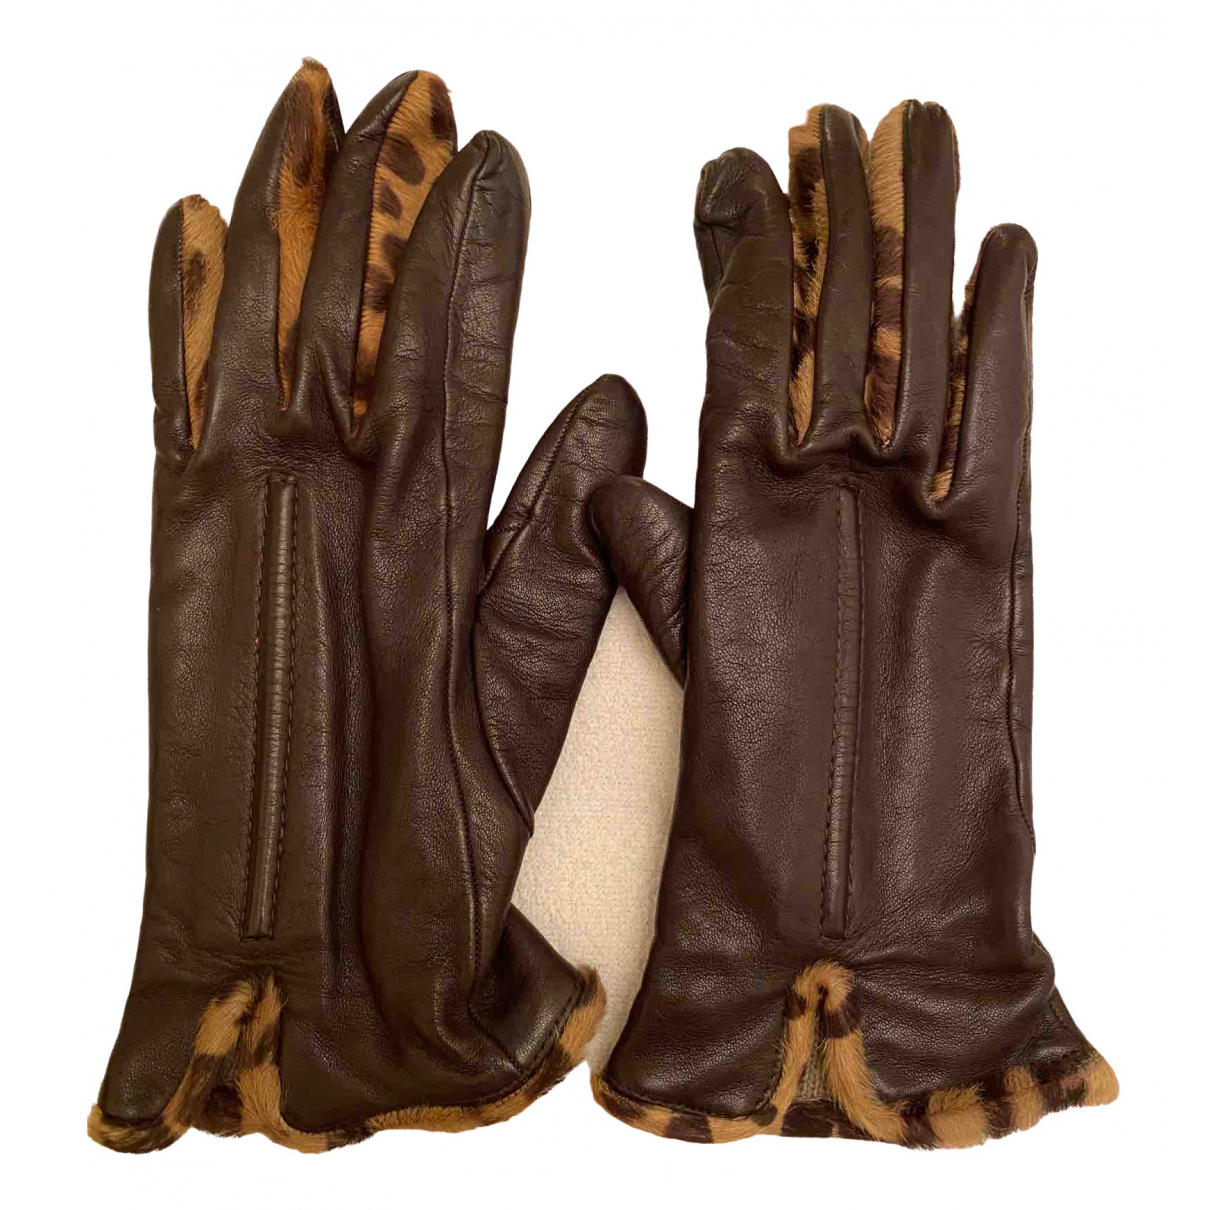 Sermoneta Gloves \N Brown Leather Gloves for Women 7 Inches